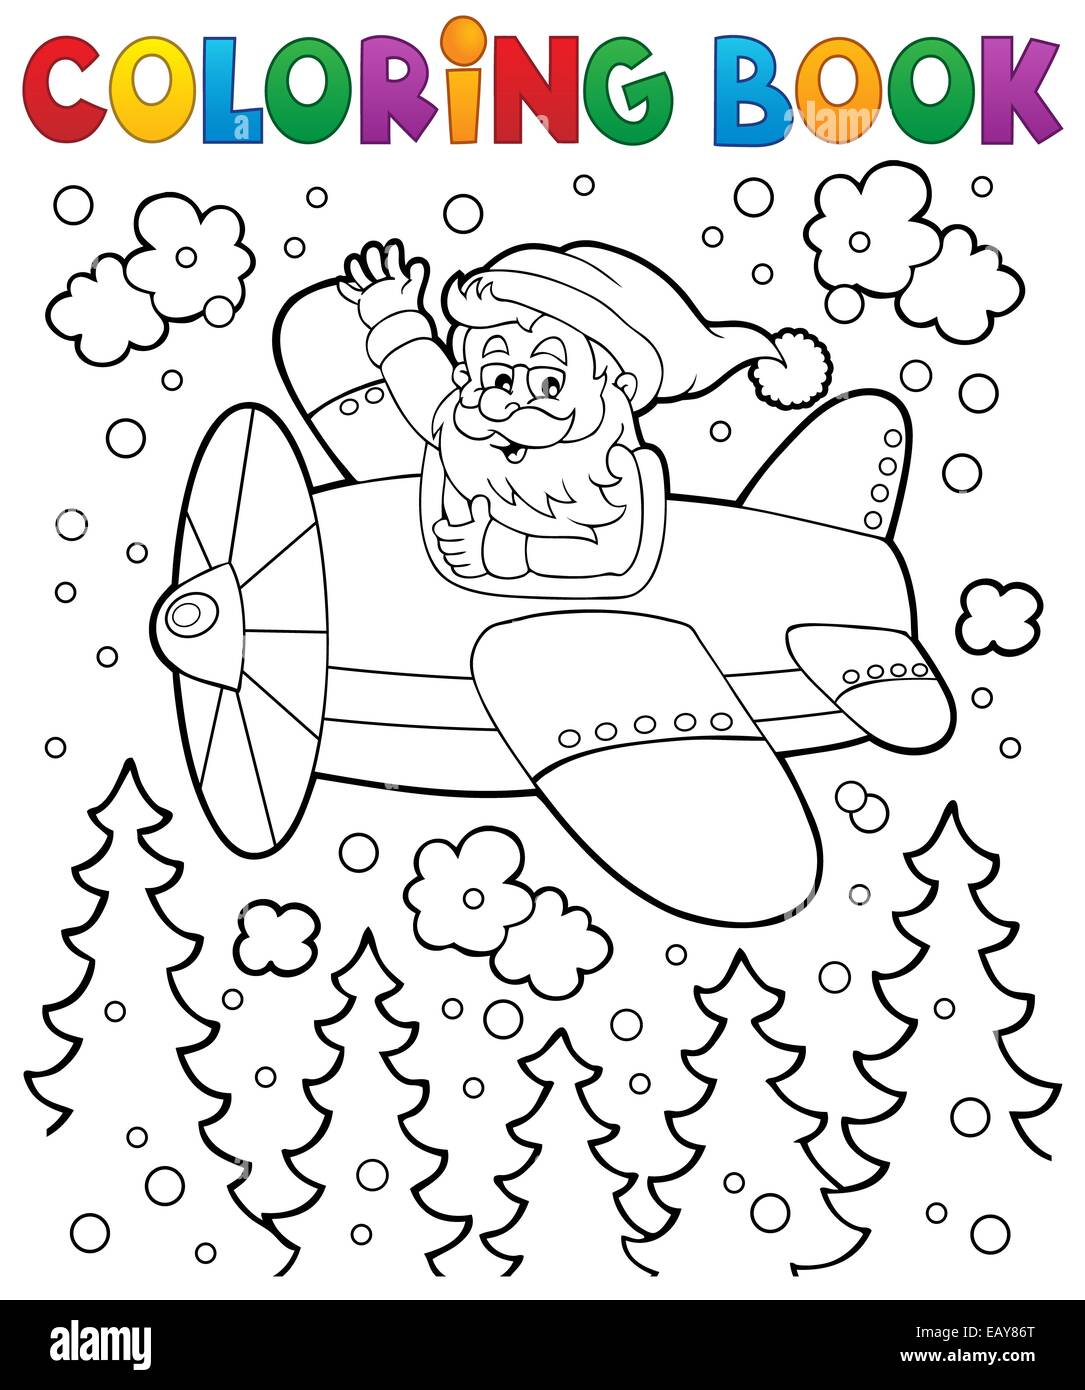 Coloring book Santa Claus in plane - picture illustration Stock ...